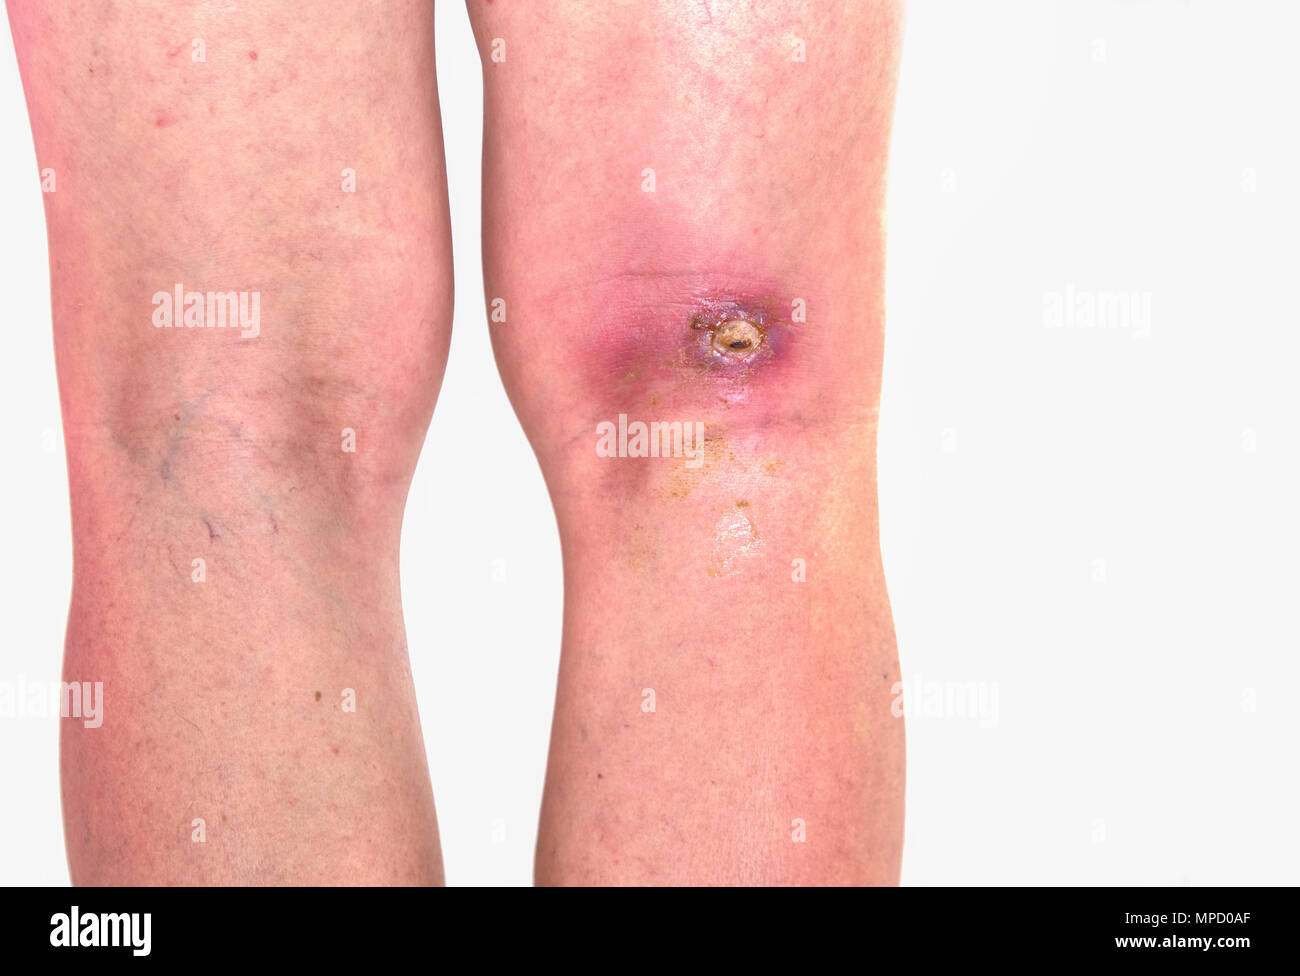 abcess popiteal area, inflammation of popiteal zone at right leg, infected wound righ knee bent - Stock Image